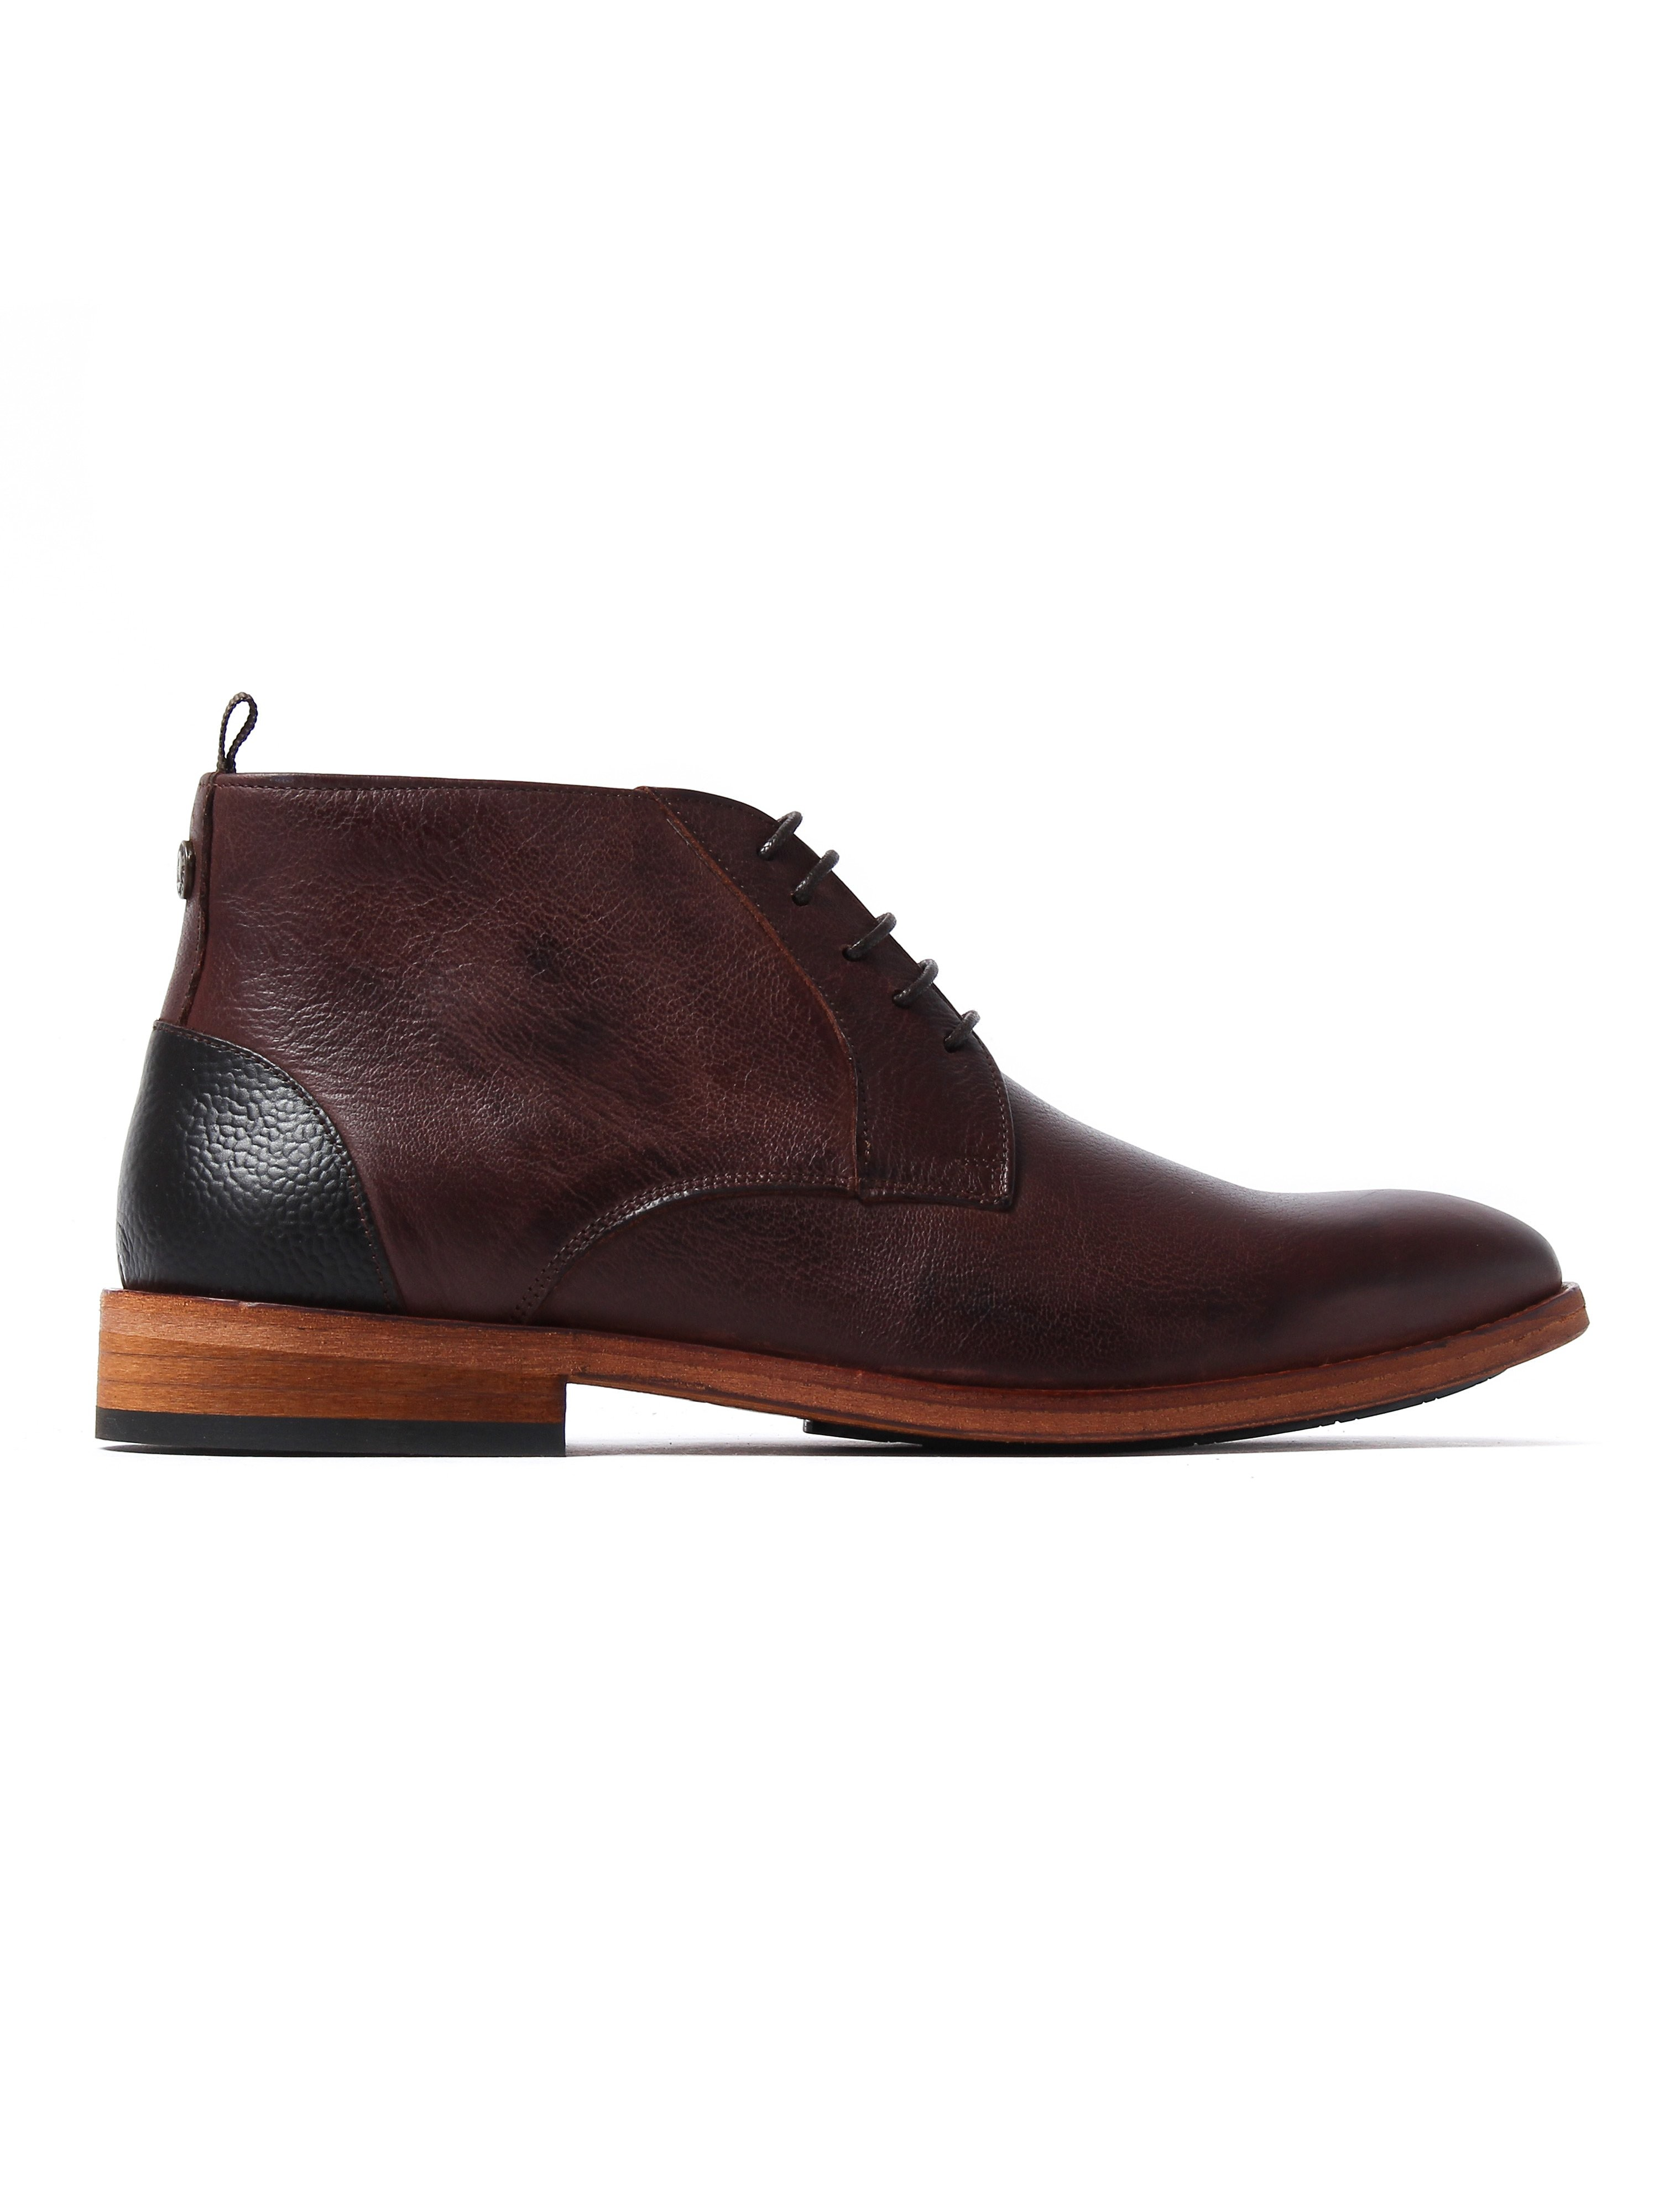 Barbour Men's Benwell Chukka Boots - Brown Leather